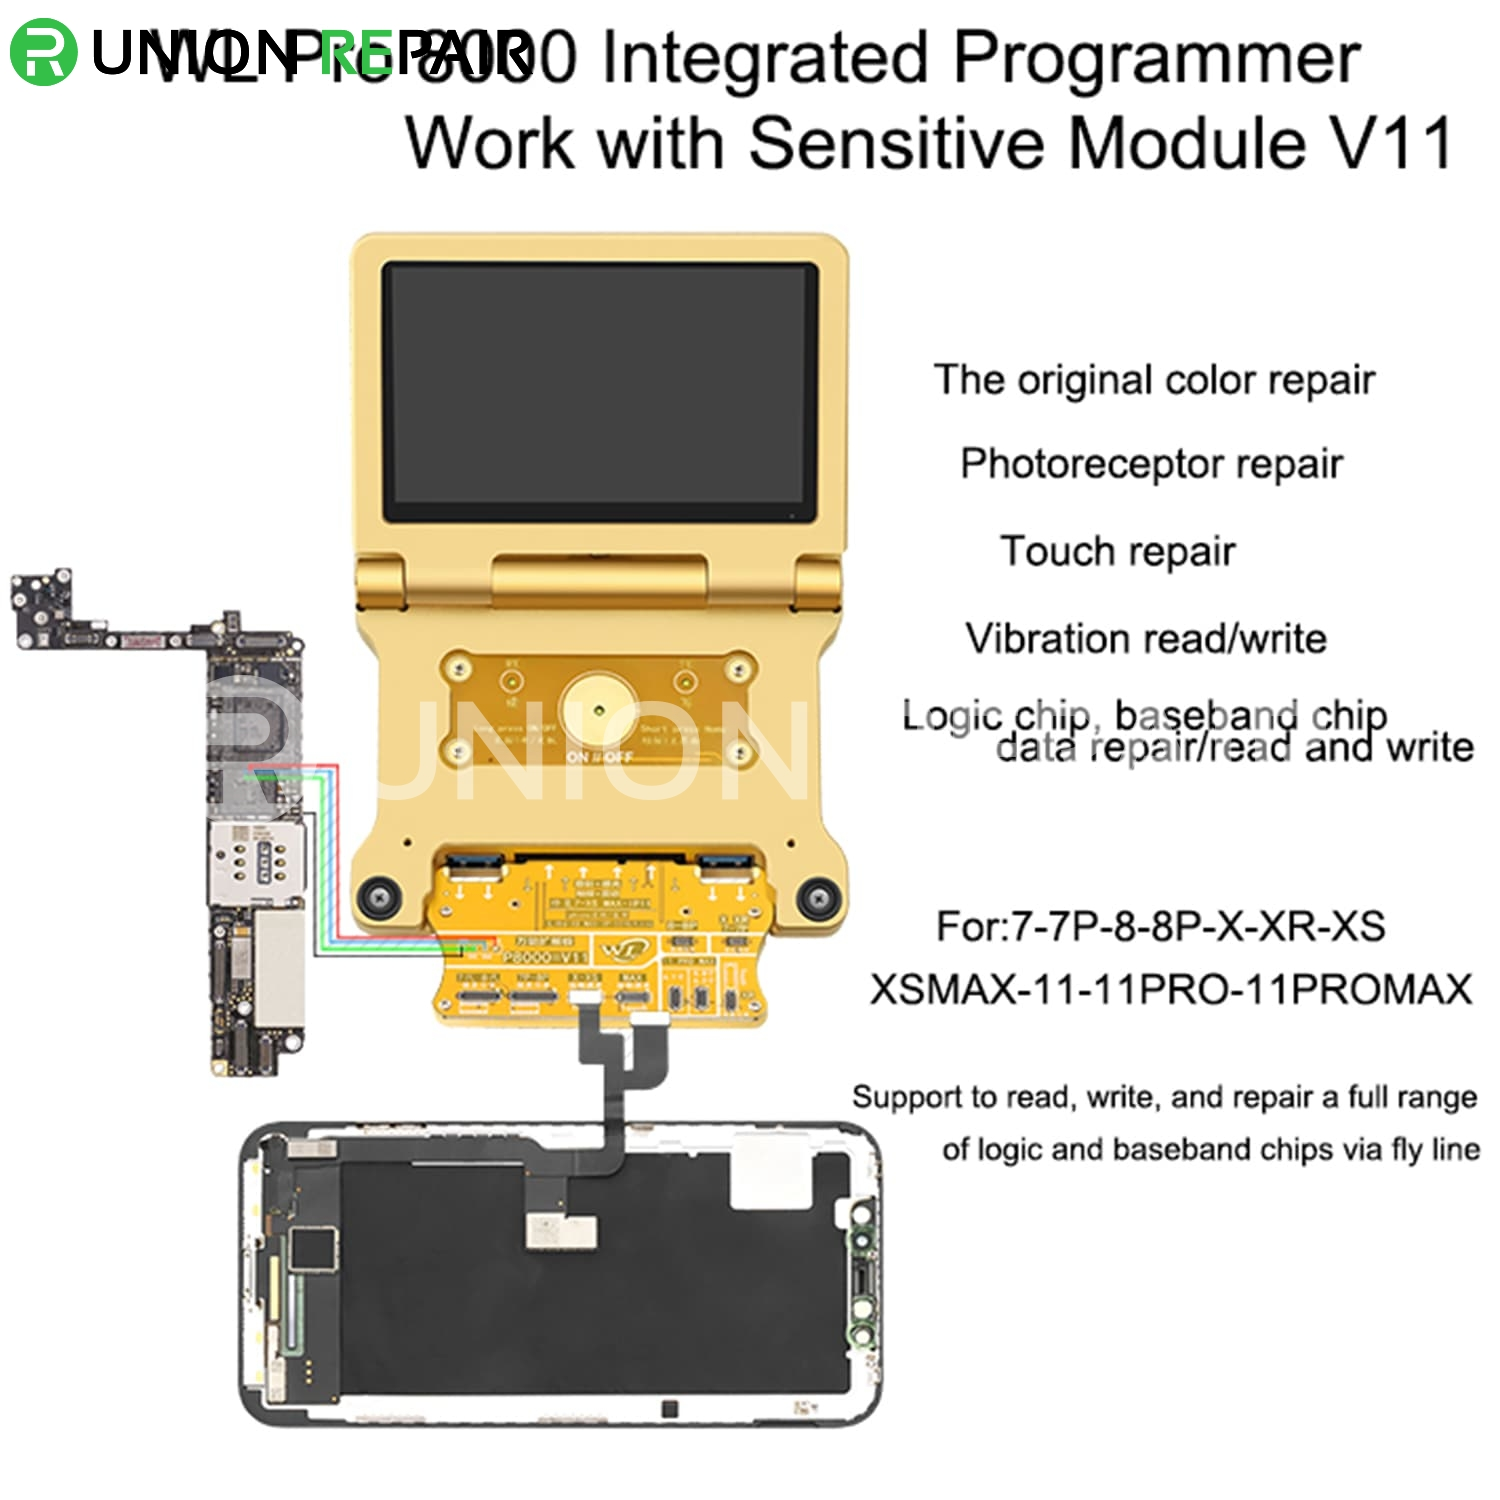 WL Pro 8000 Integrated programmer for Battery Test Light Sensor Restorer NAND Read Write, Condition: Pro 8000 Main Unit